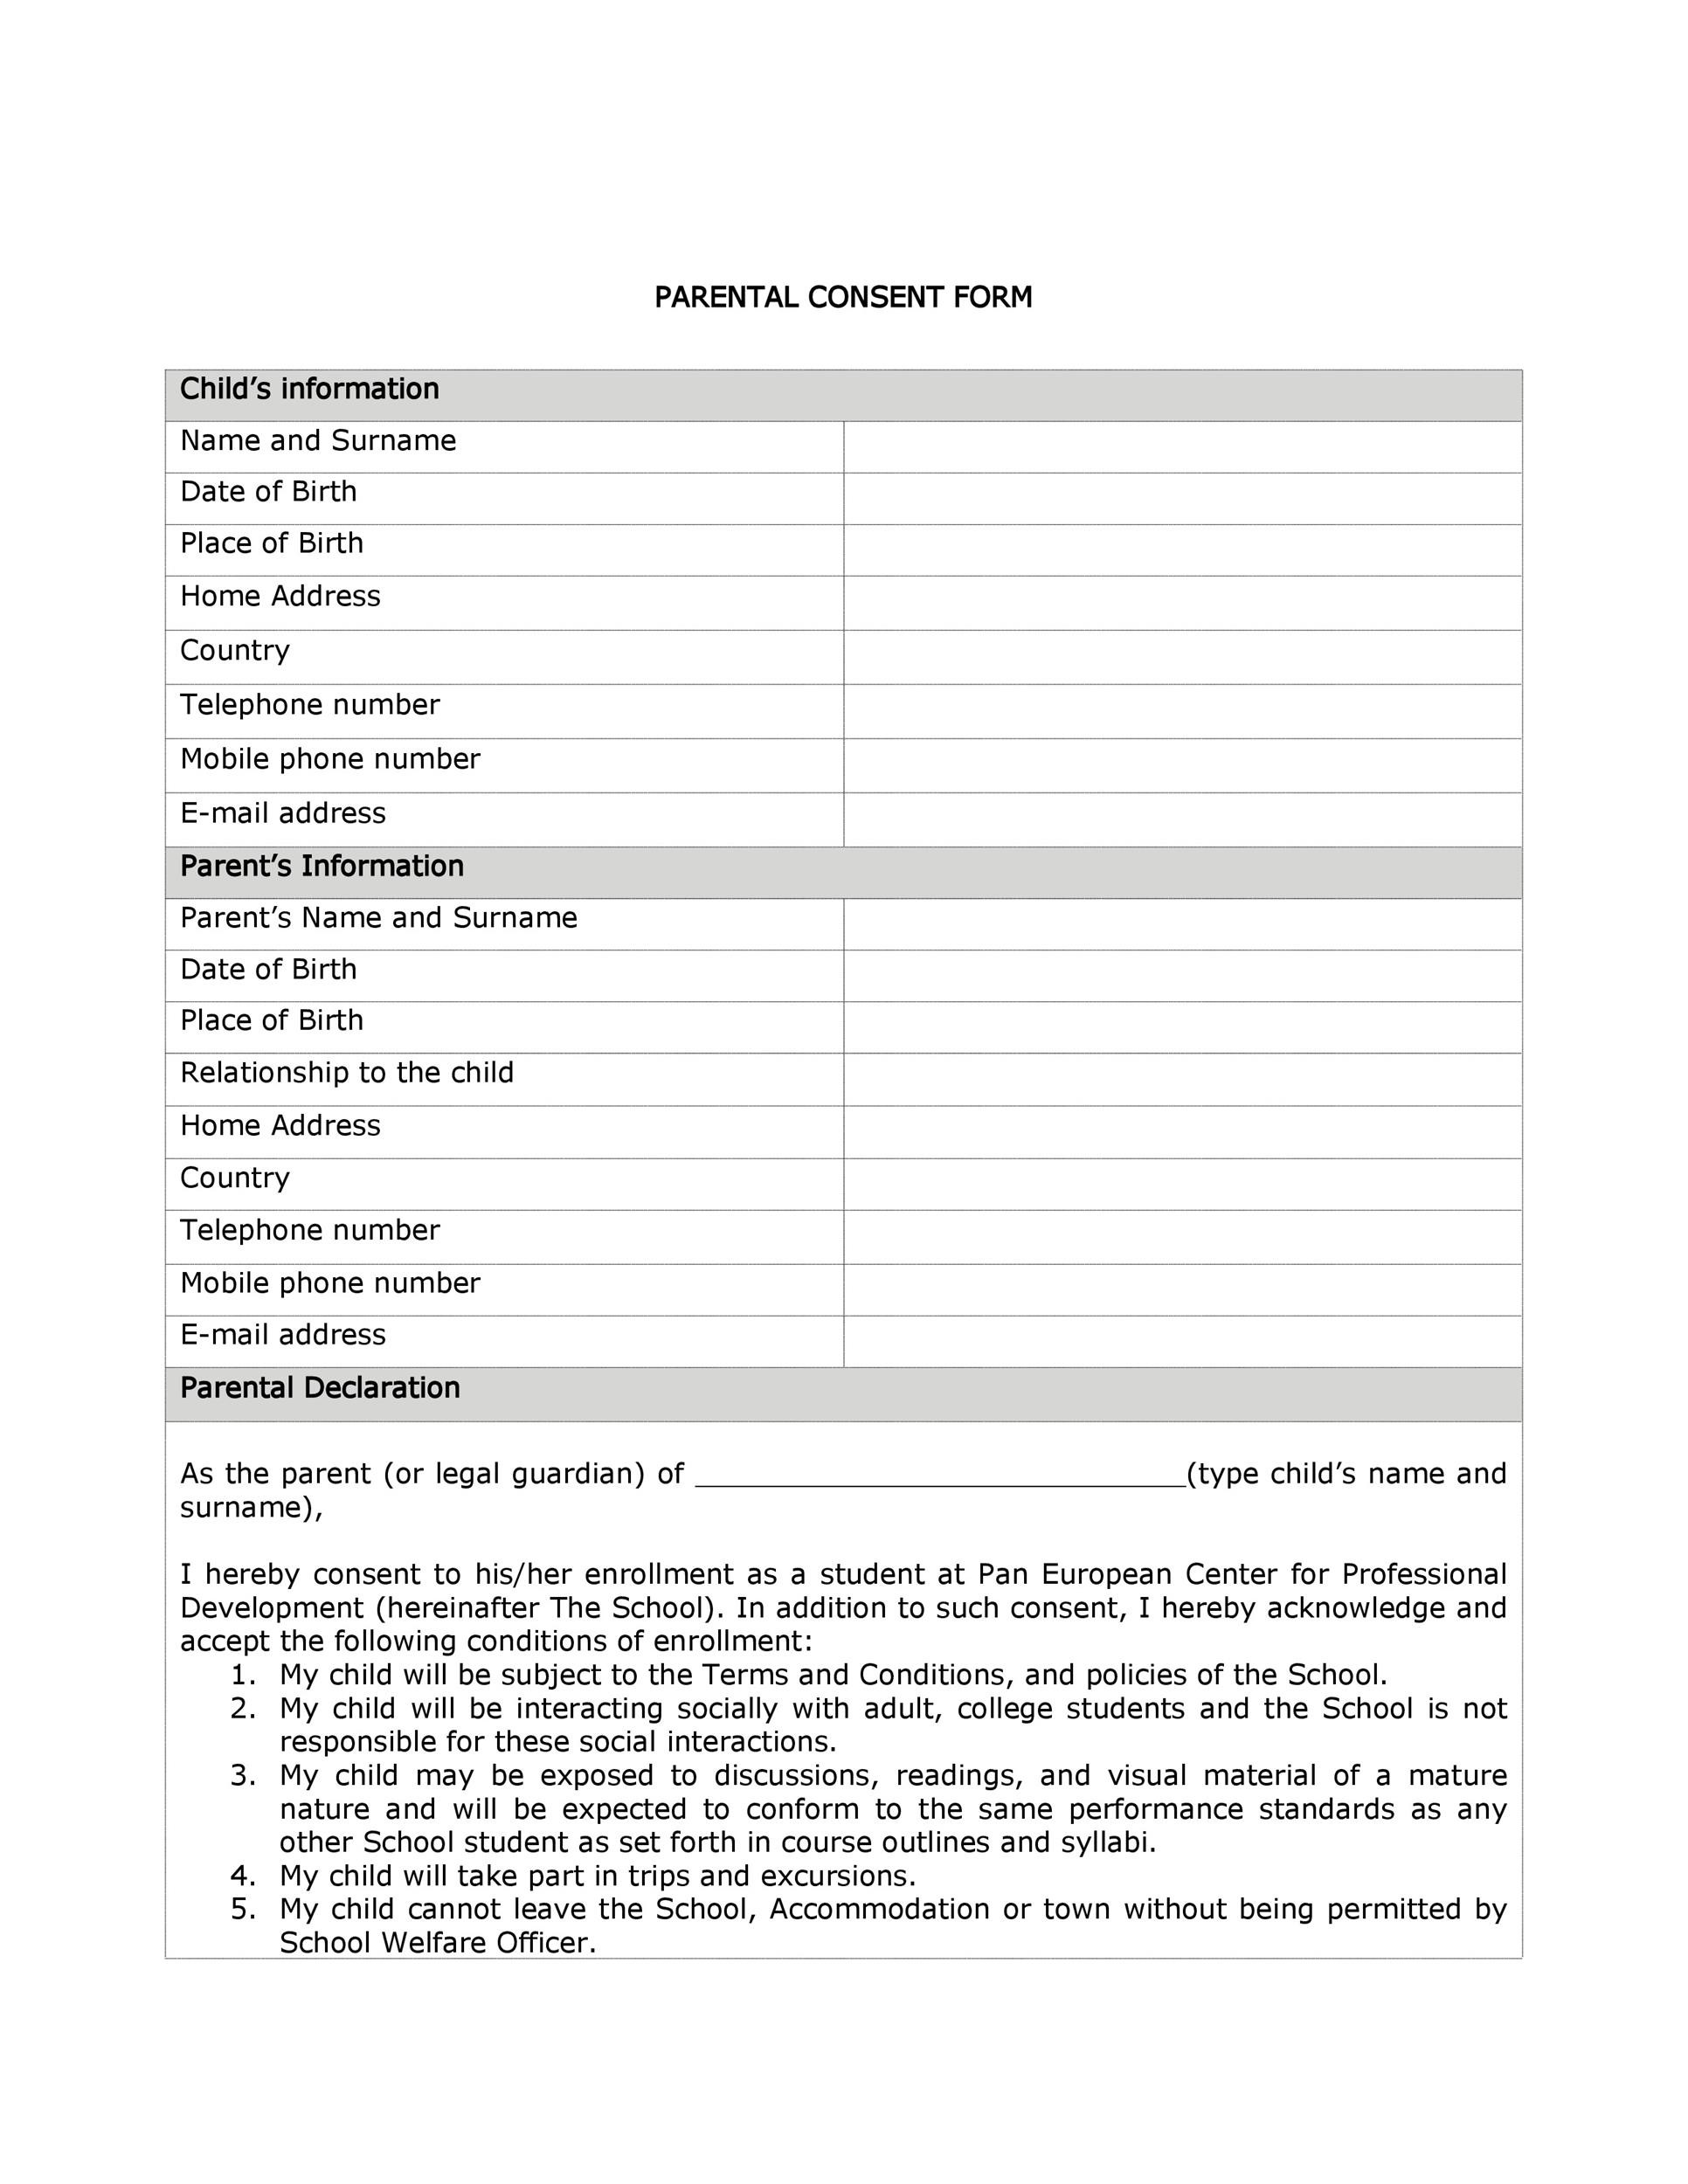 Free parental consent form template 12